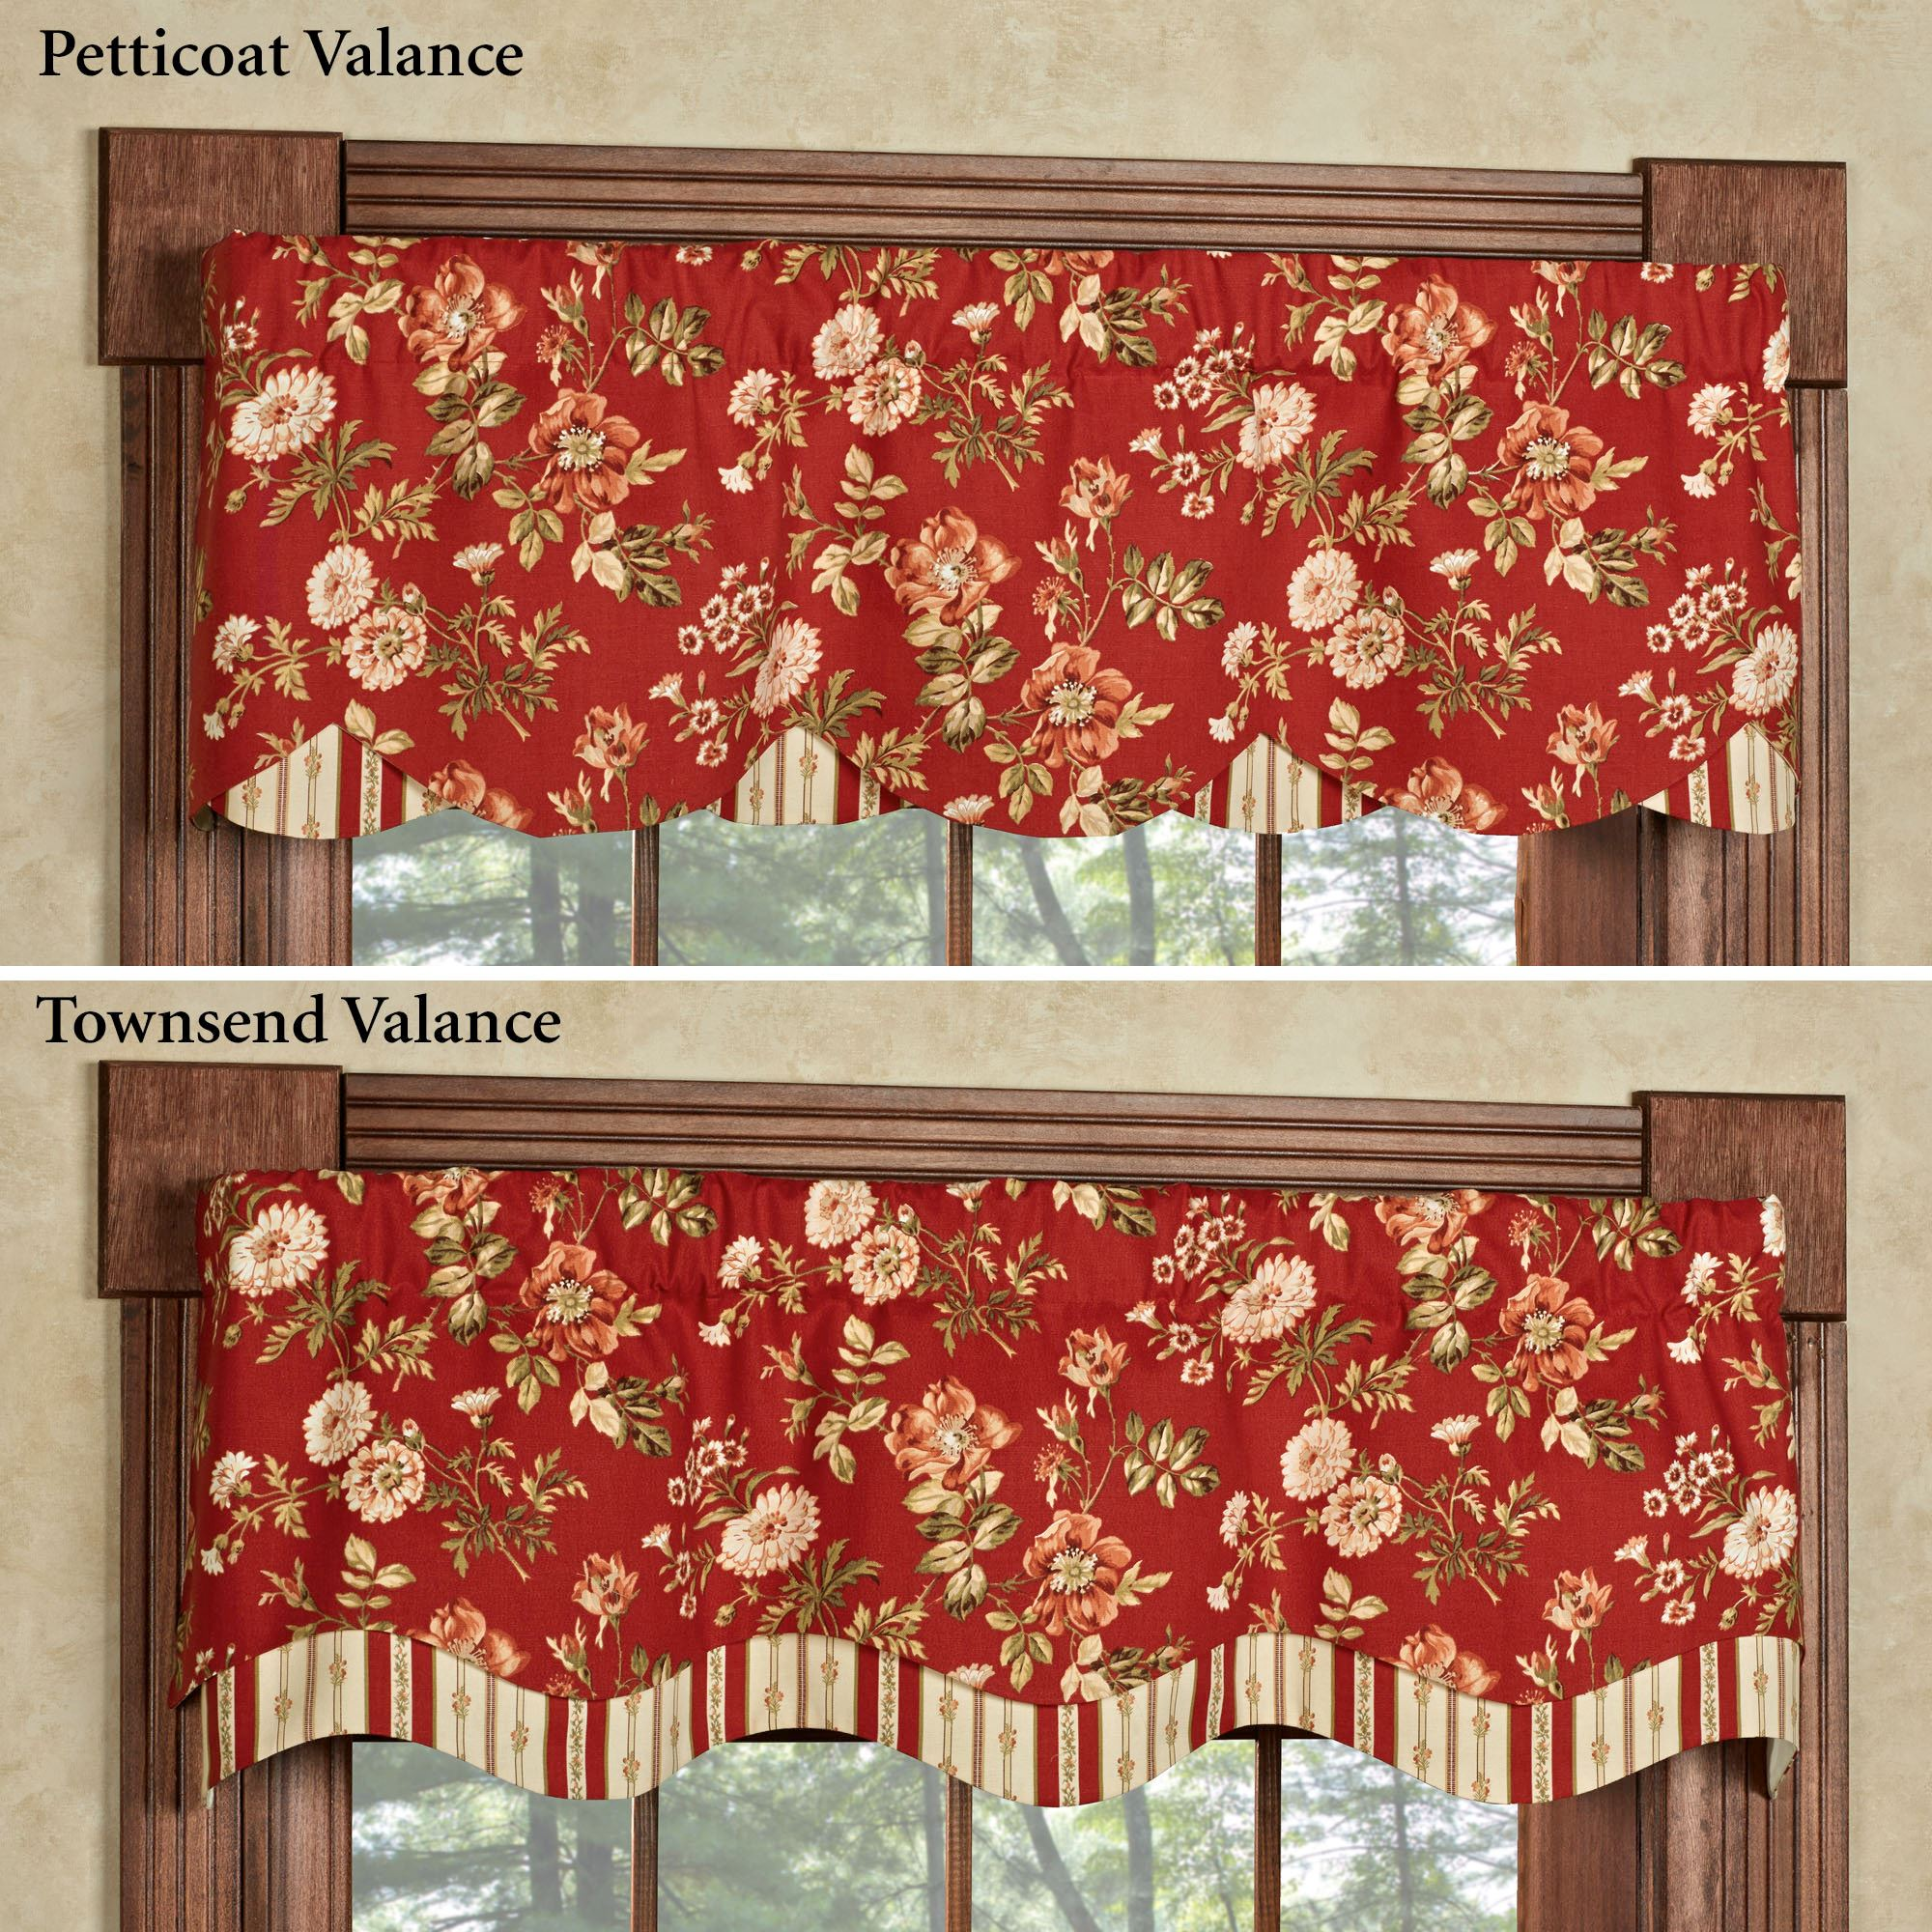 floral window valances magnolia touch to zoom farrell dark red floral layered window valance